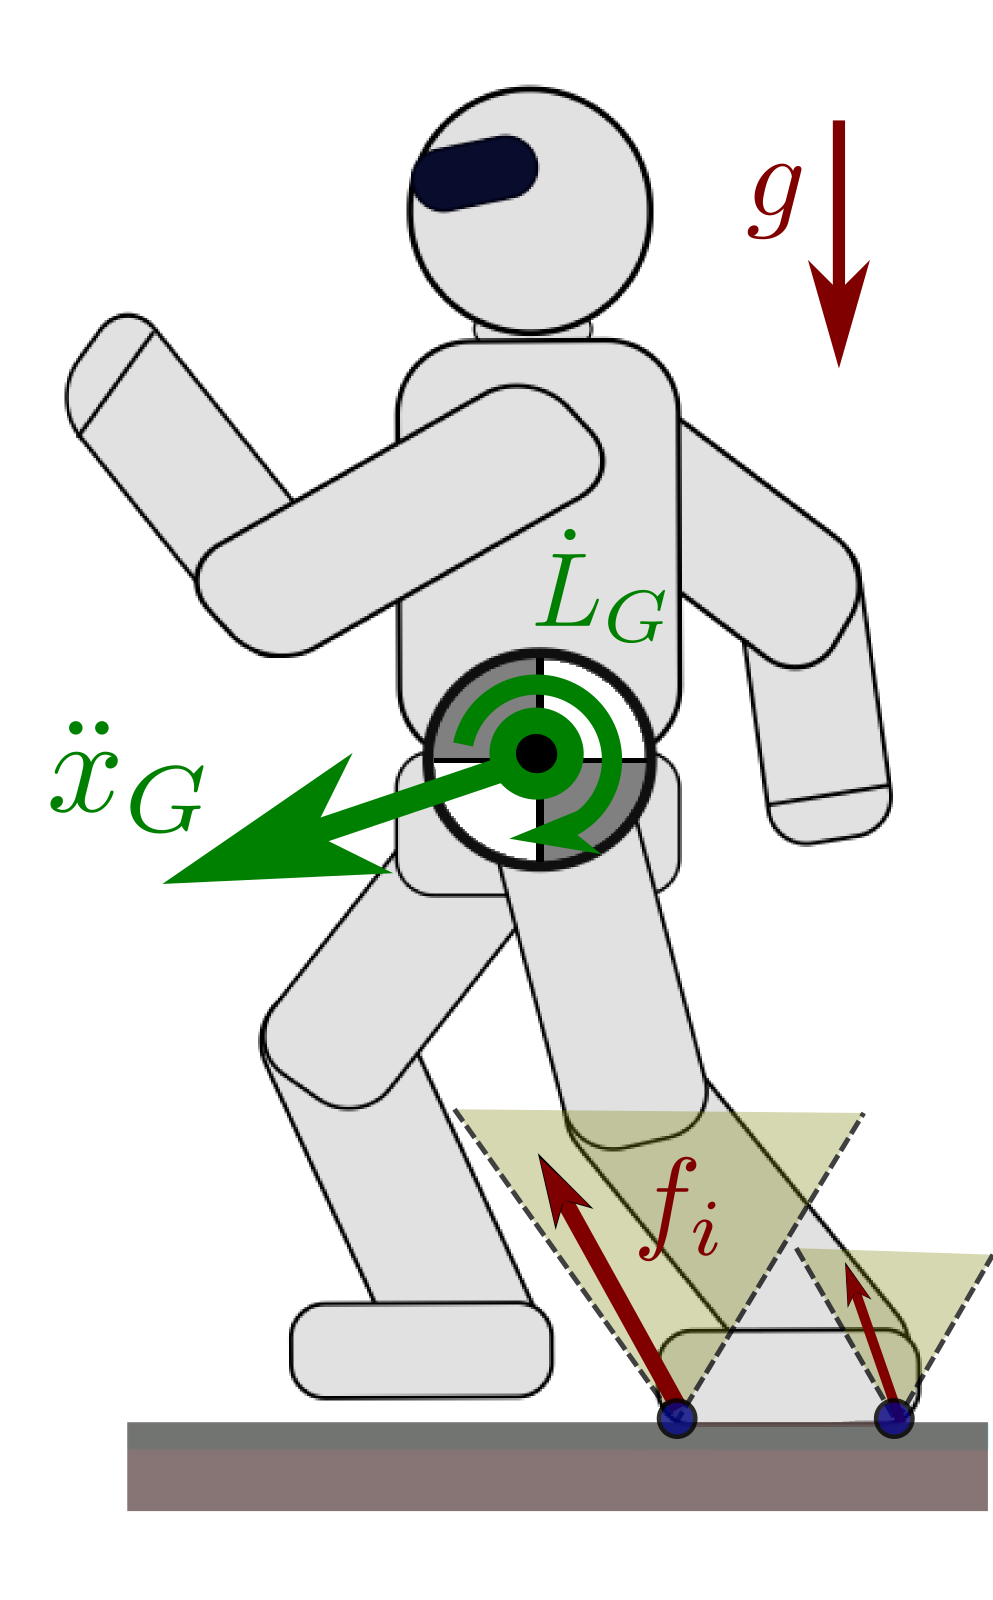 Humanoid whole-body dynamics involve contact forces and the dynamic momentum